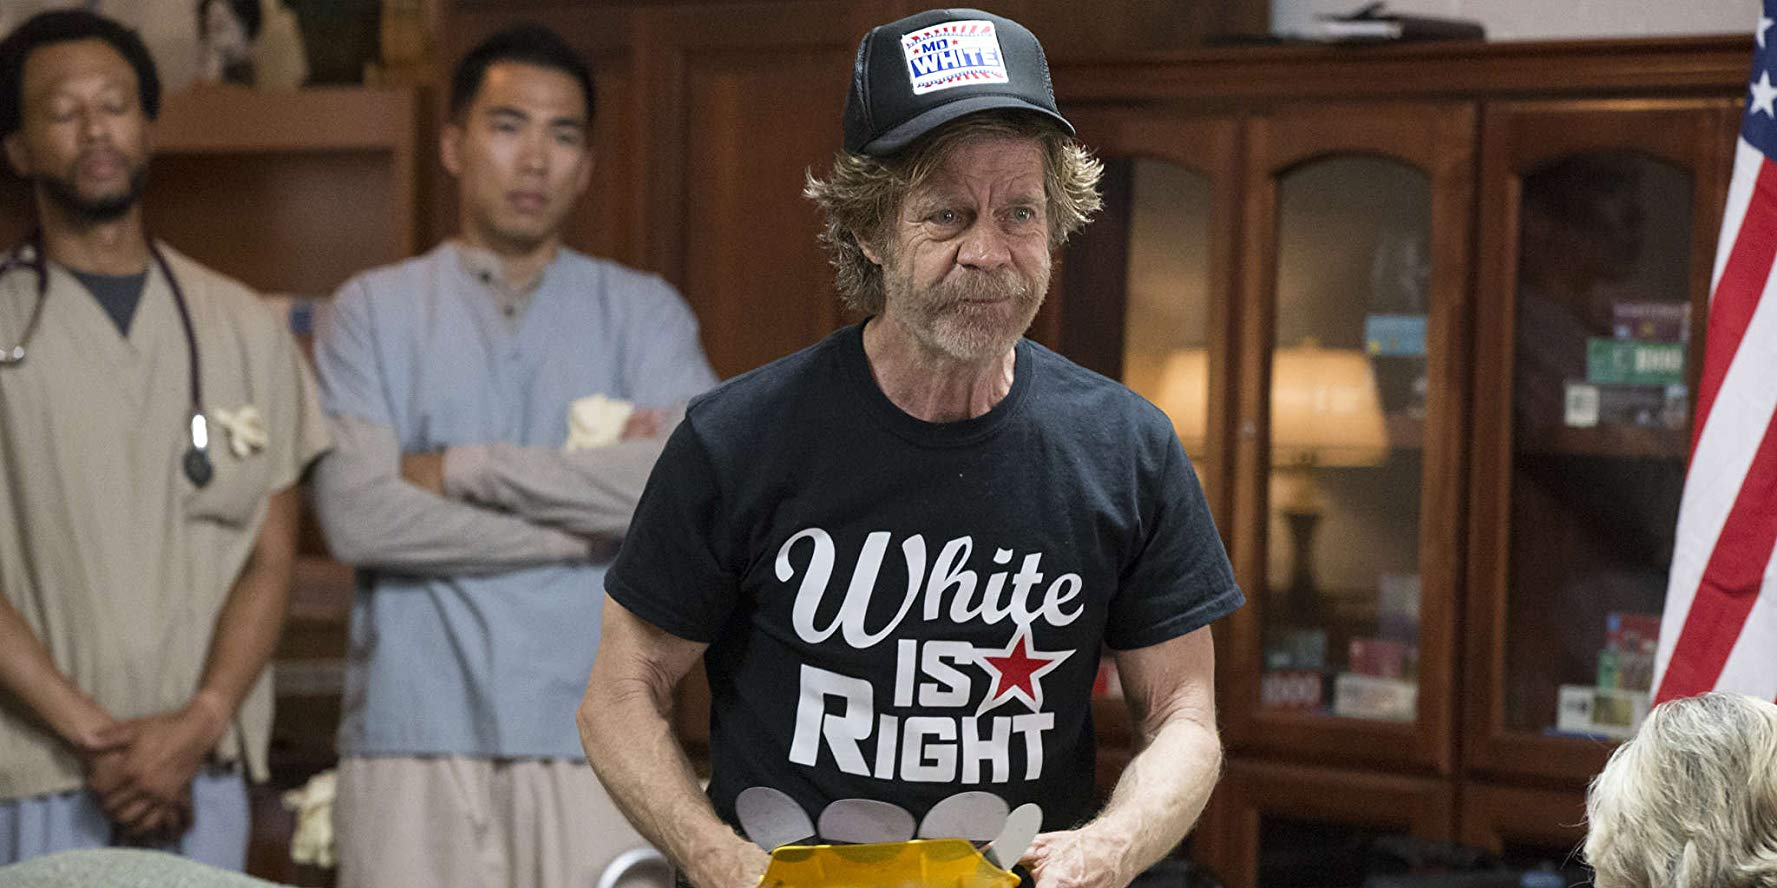 Frank campaigns for Mo White